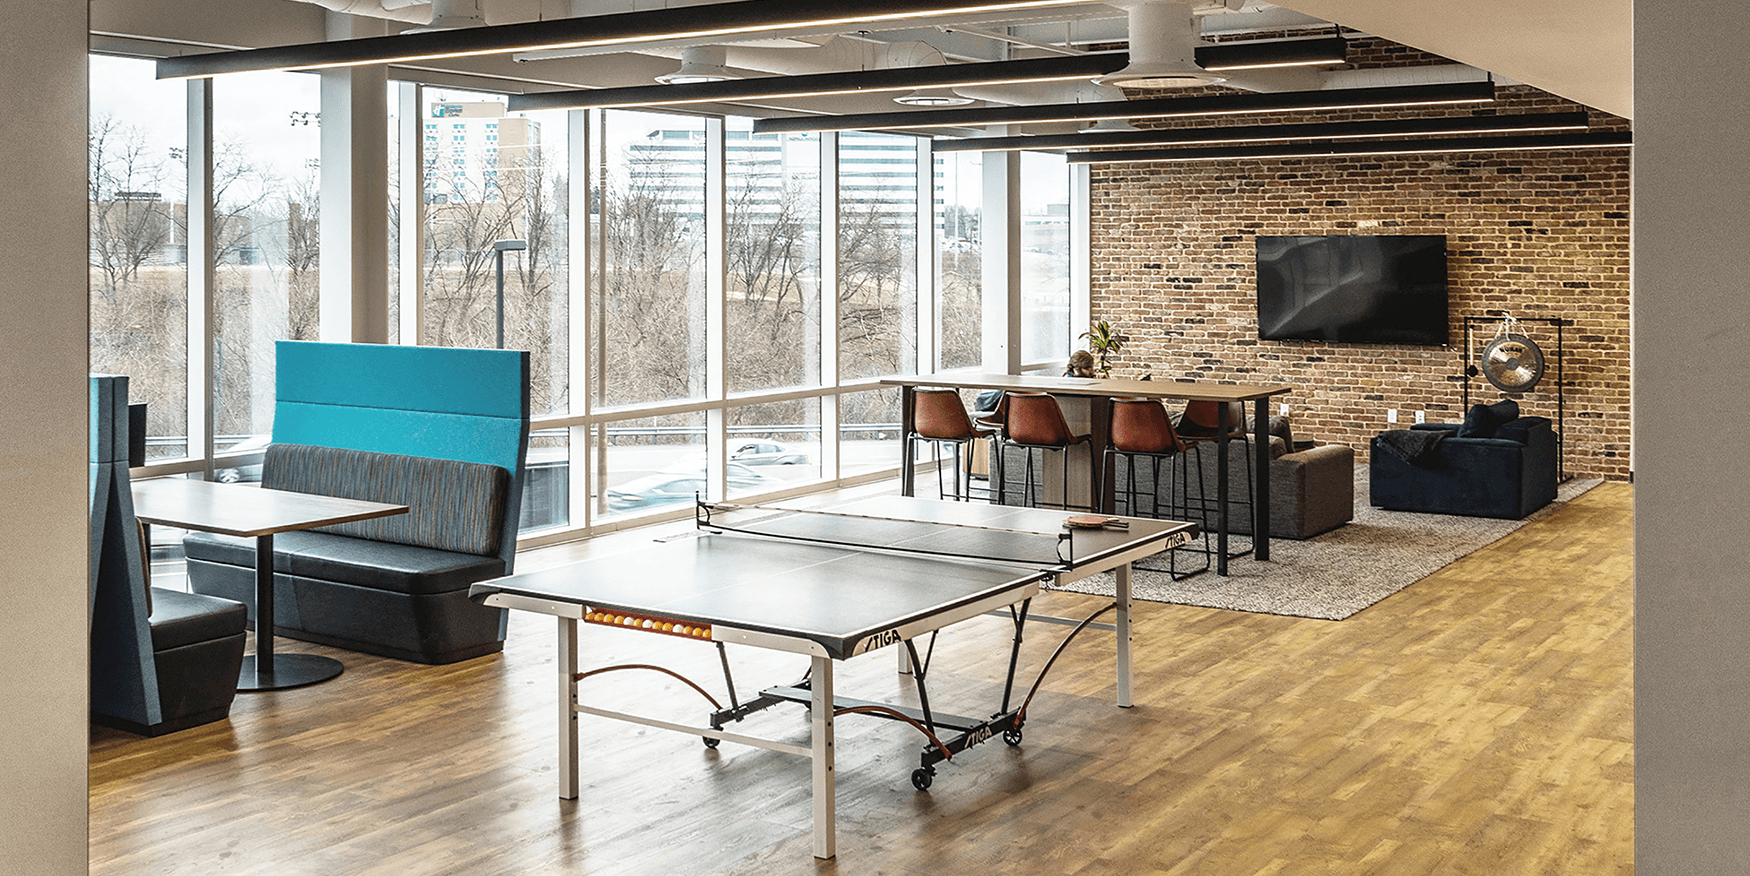 collaborative workspace with ping pong table and high-top table